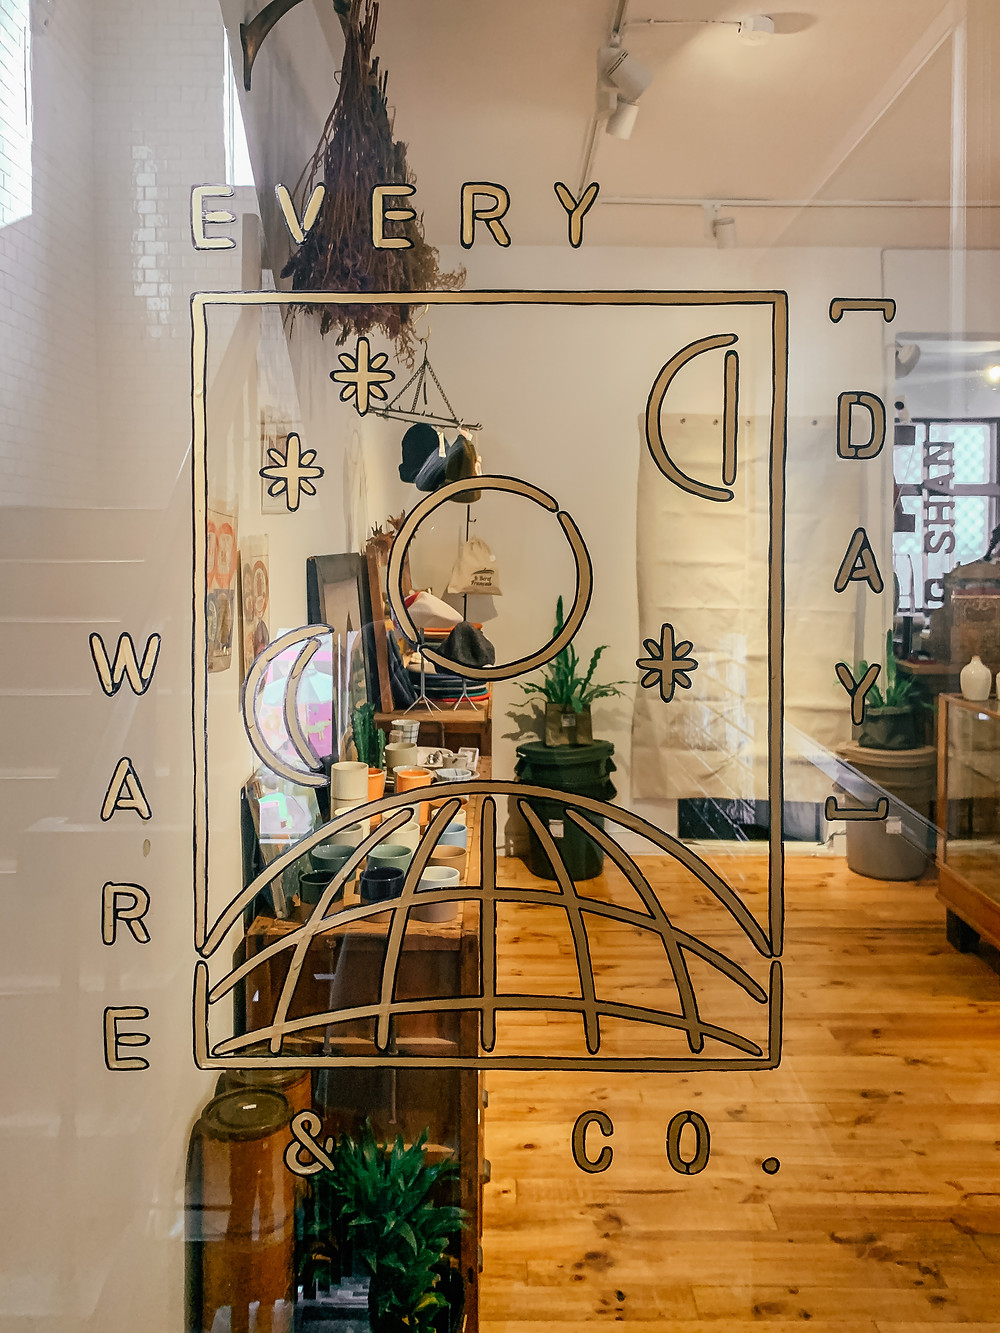 Everyday Ware & Co. | Taipei Select Shop | A Style Alike